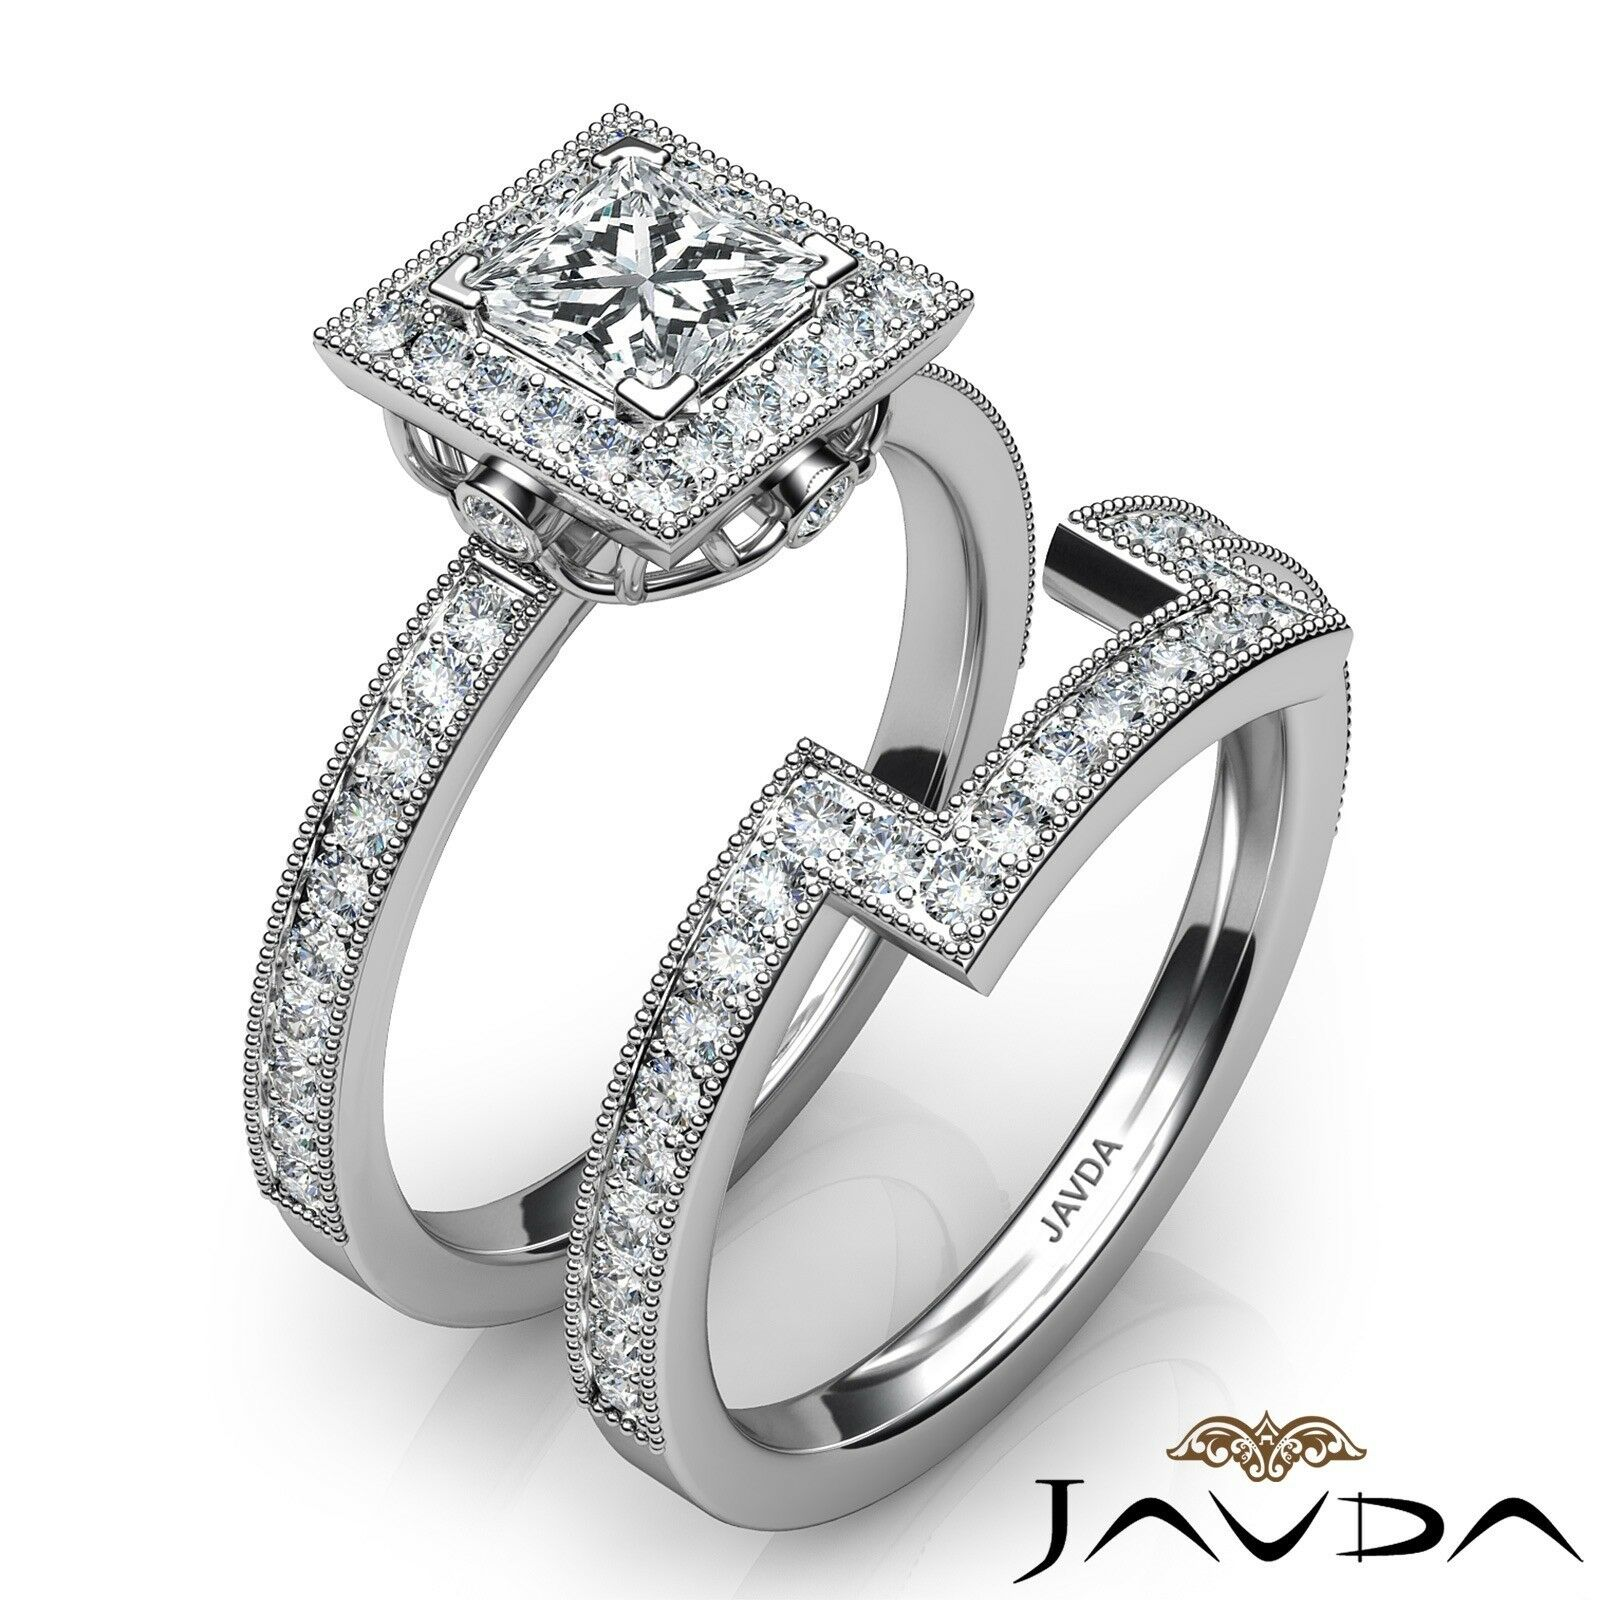 1.9ct Milgrain Edge Bridal Set Princess Diamond Engagement Ring GIA F-VS2 W Gold 2